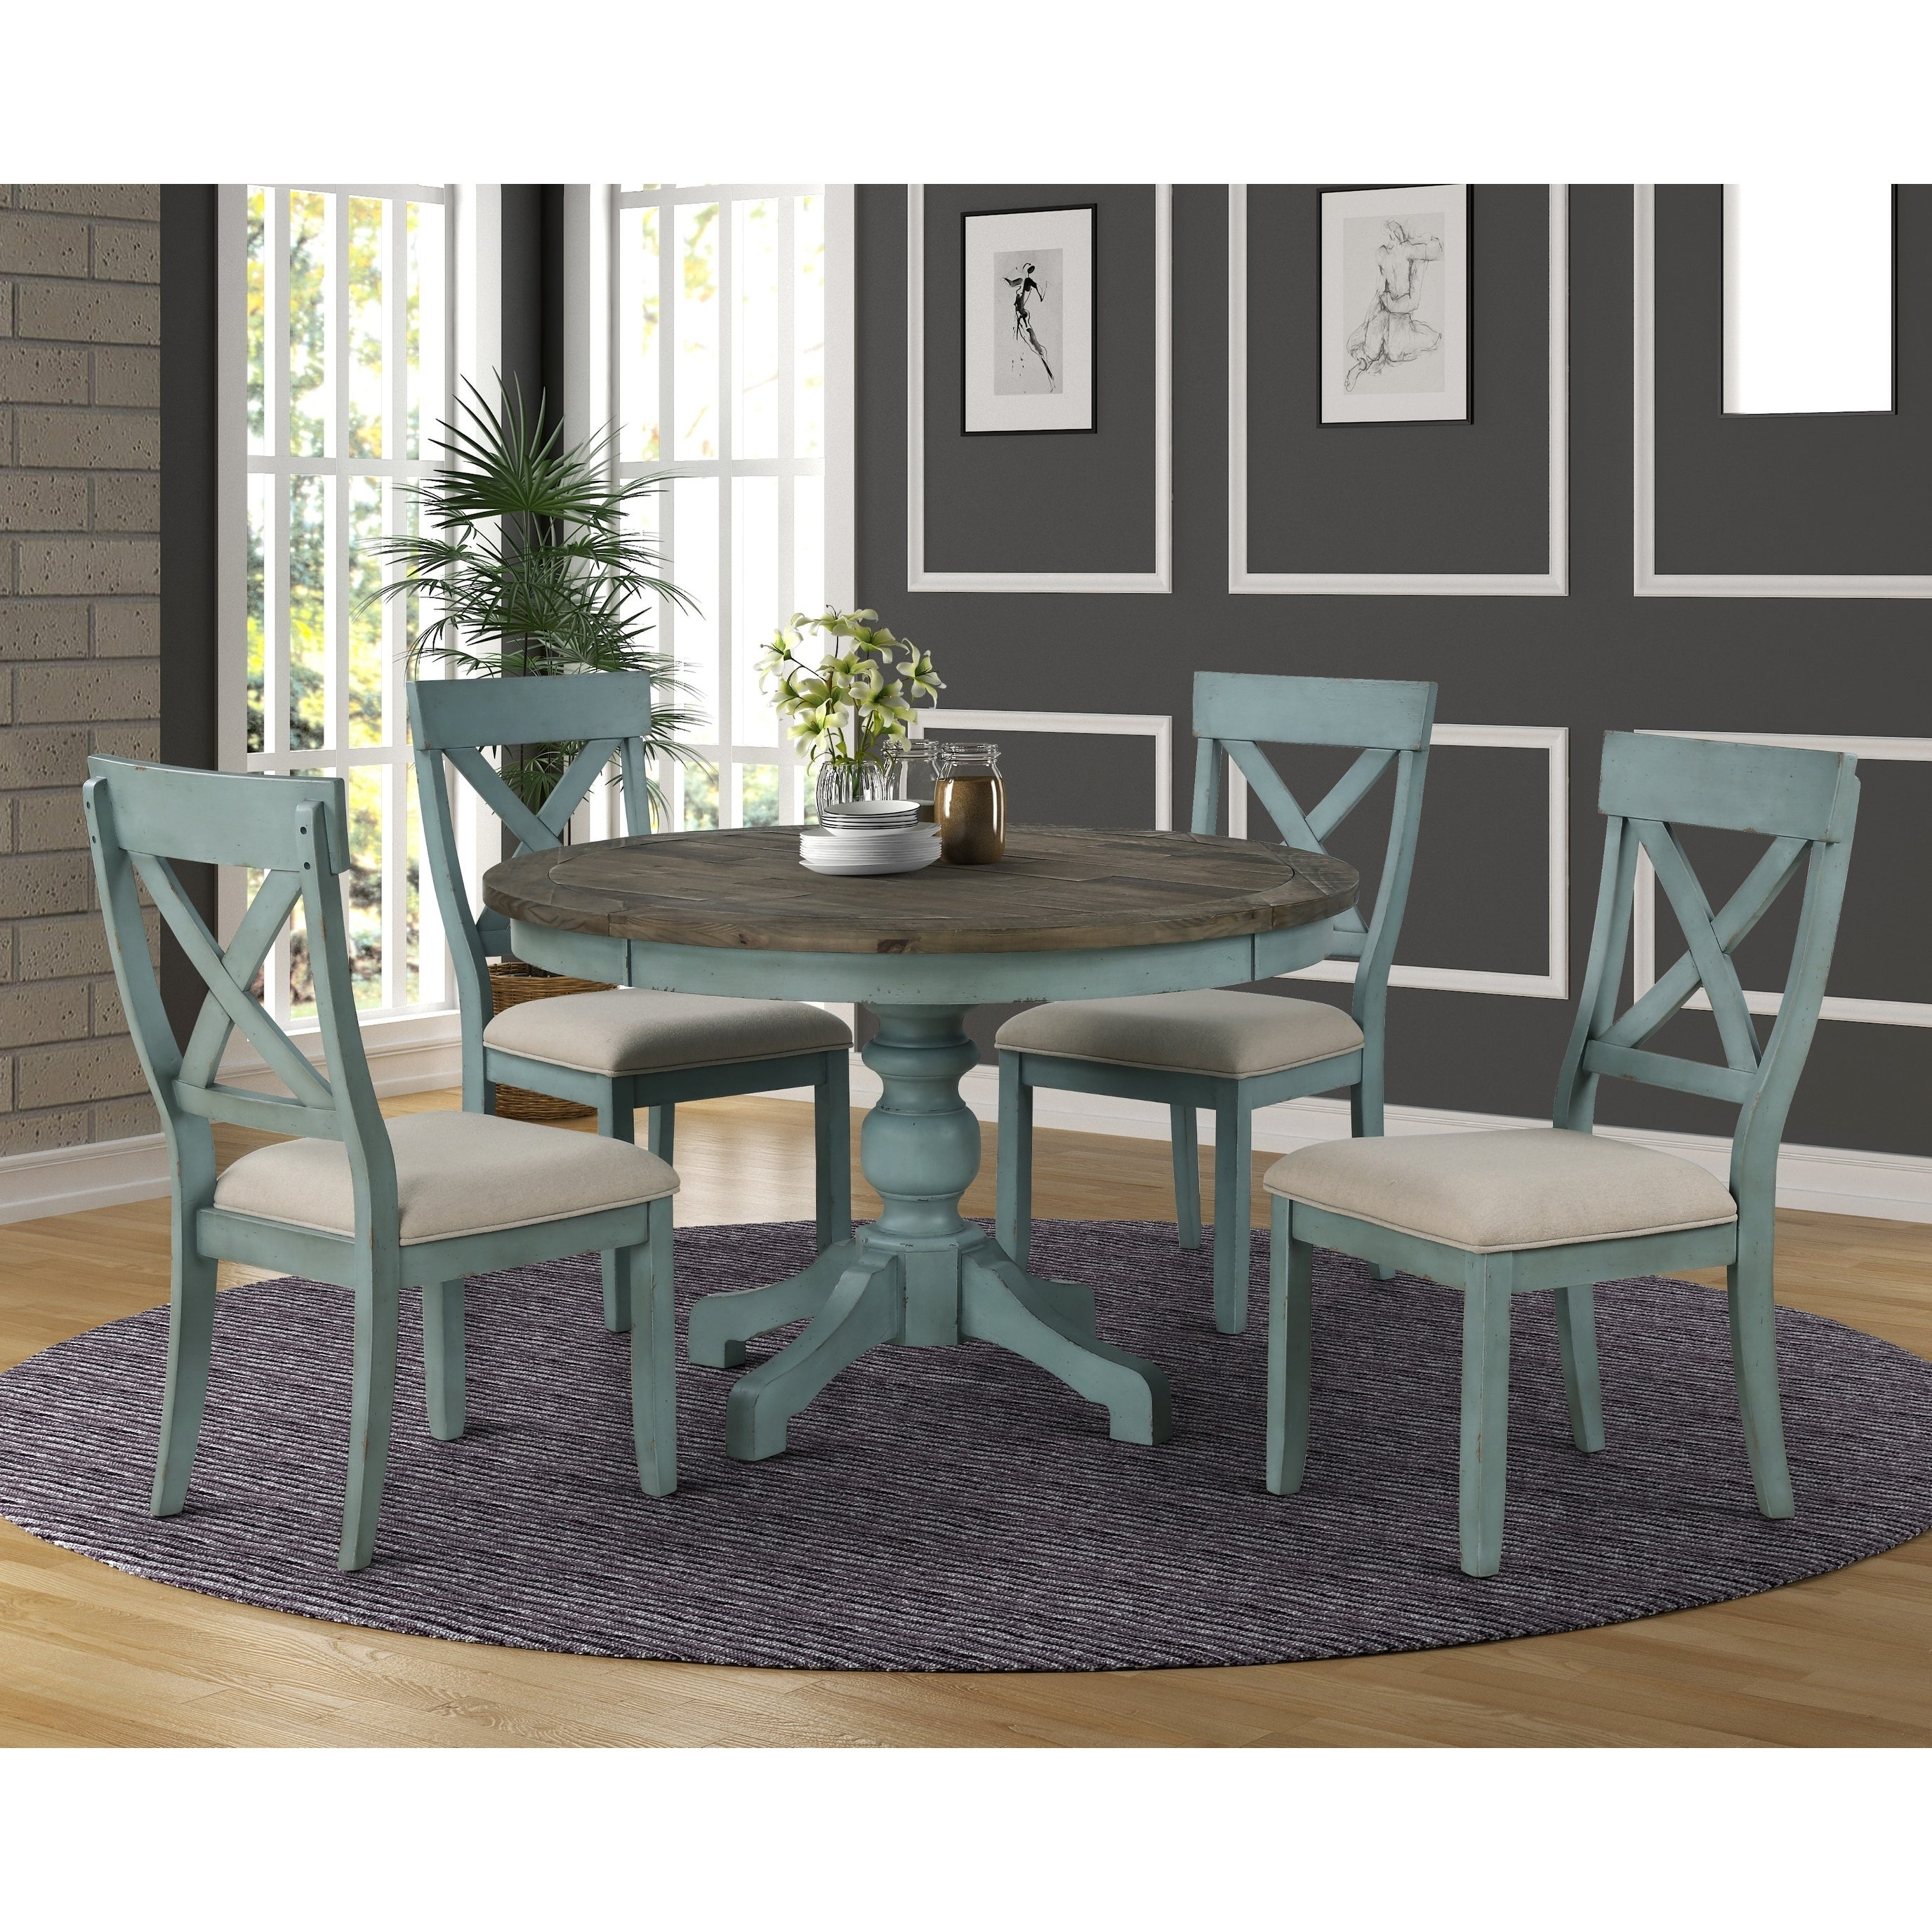 Prato Round Blue And Brown Two Tone Finish Wood Dining Table N A